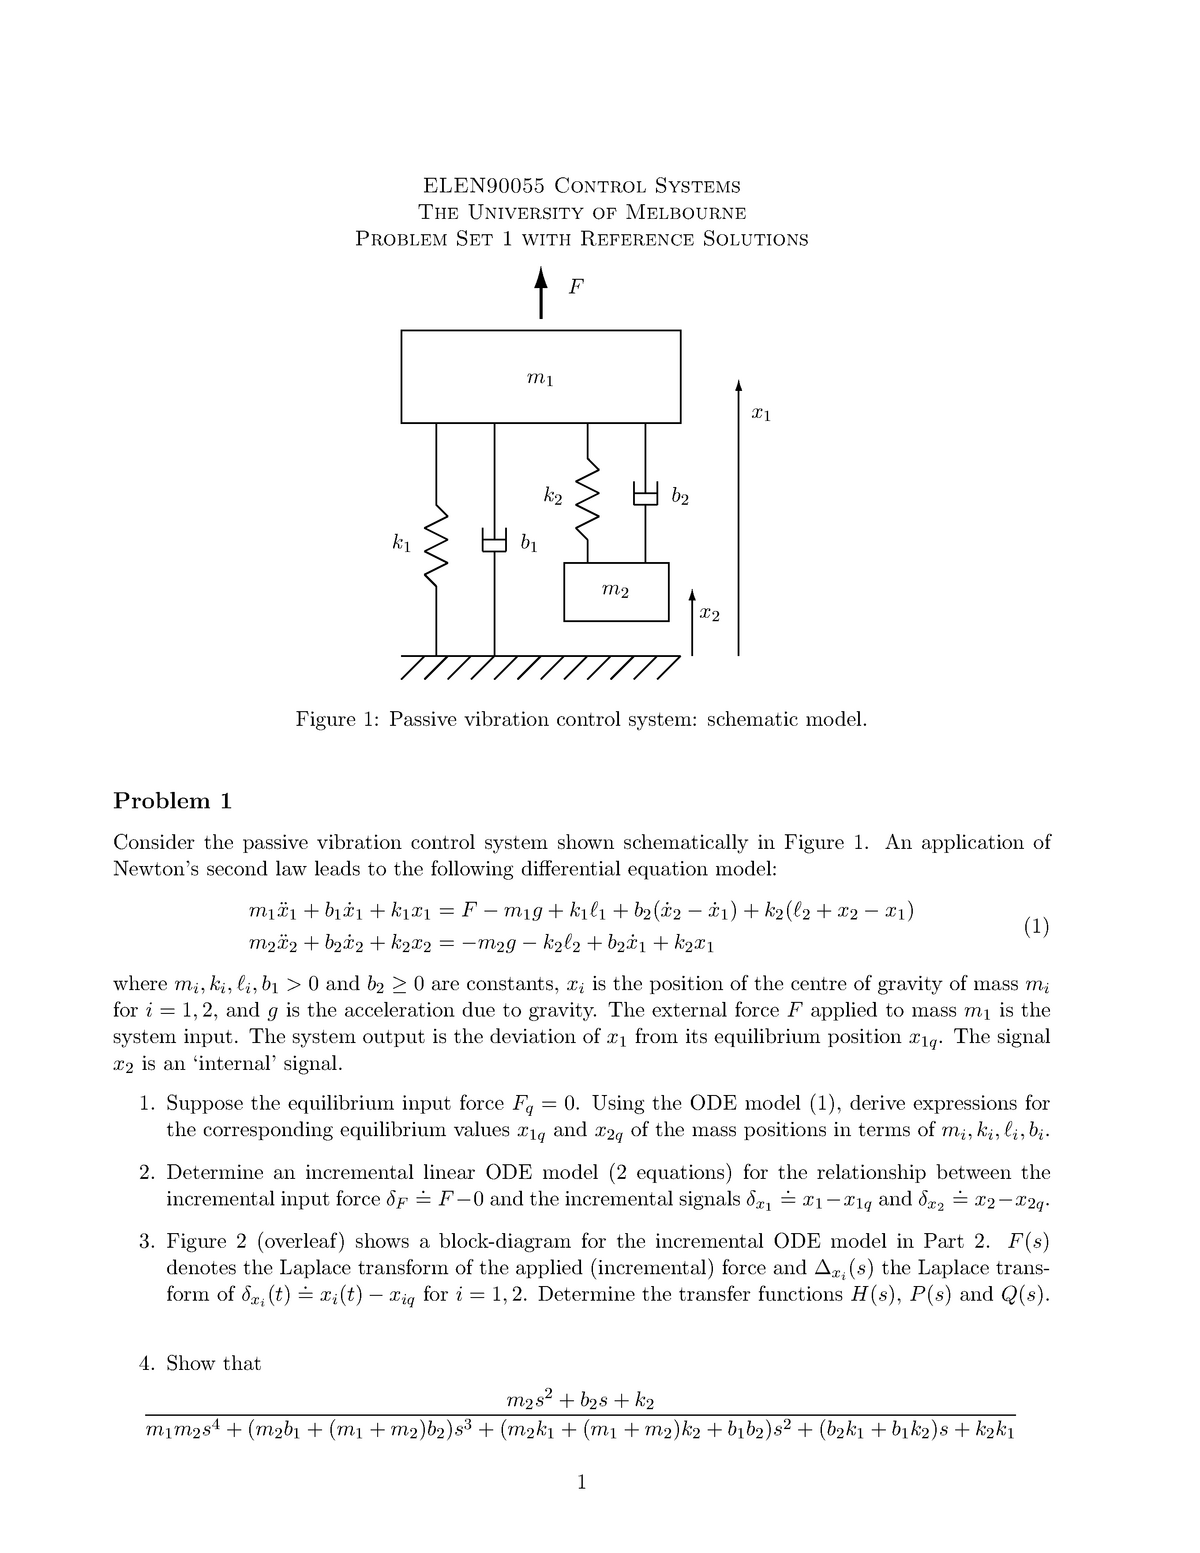 Tutorial work - 1-5 - problem sheets with solutions